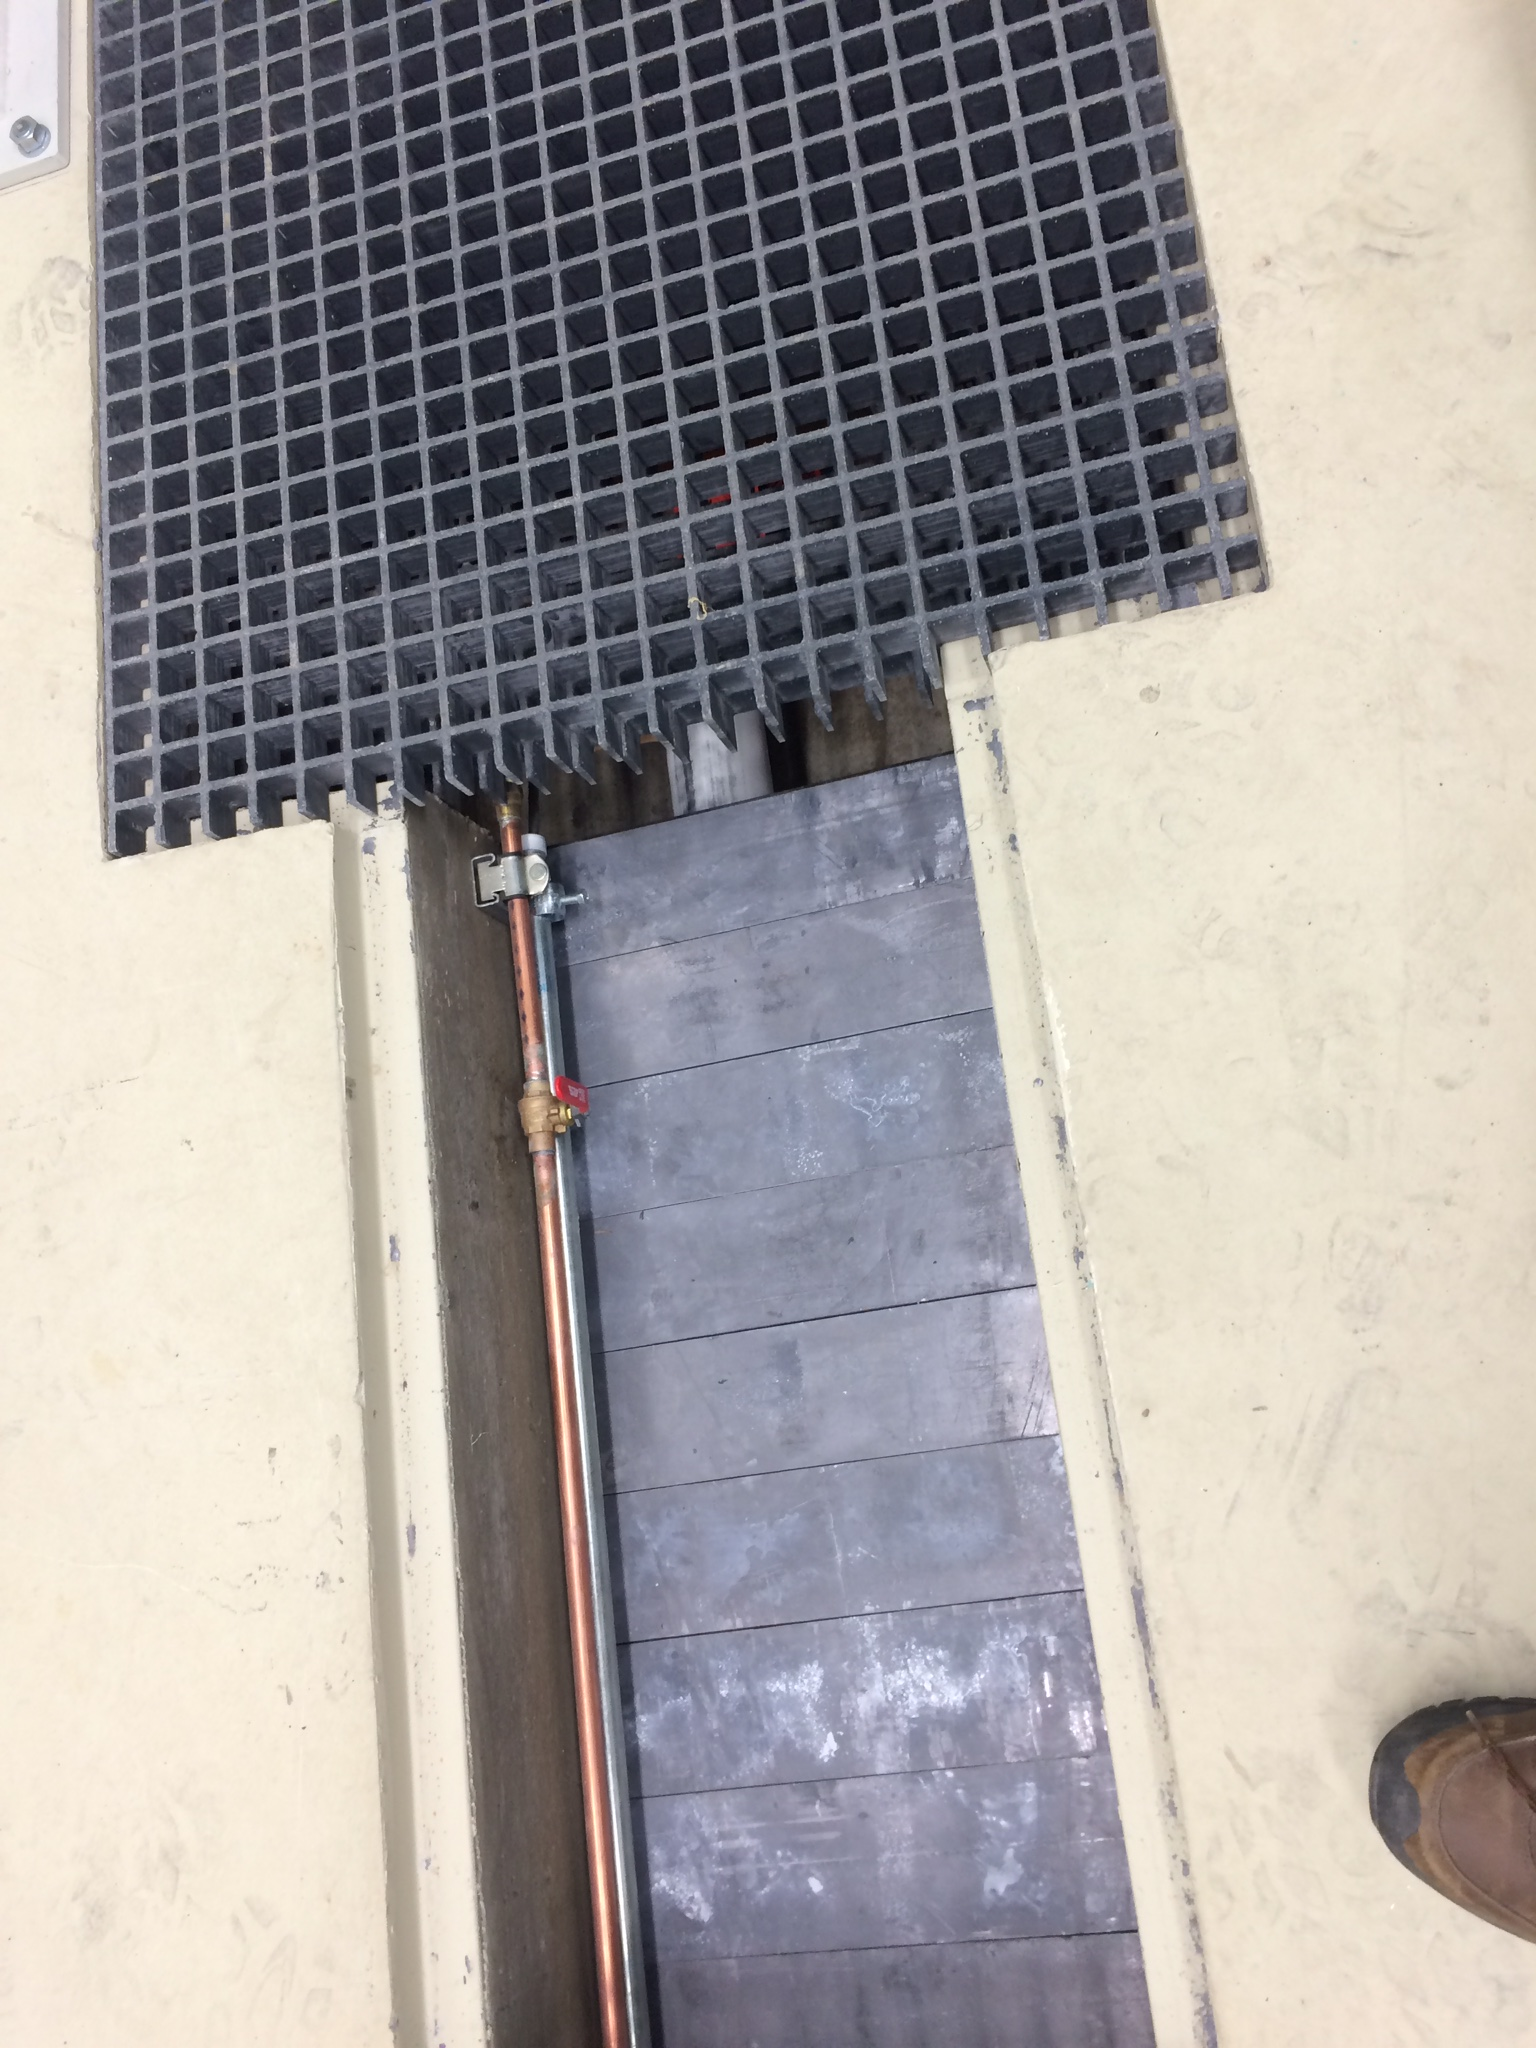 Lead-covered transfer pipes